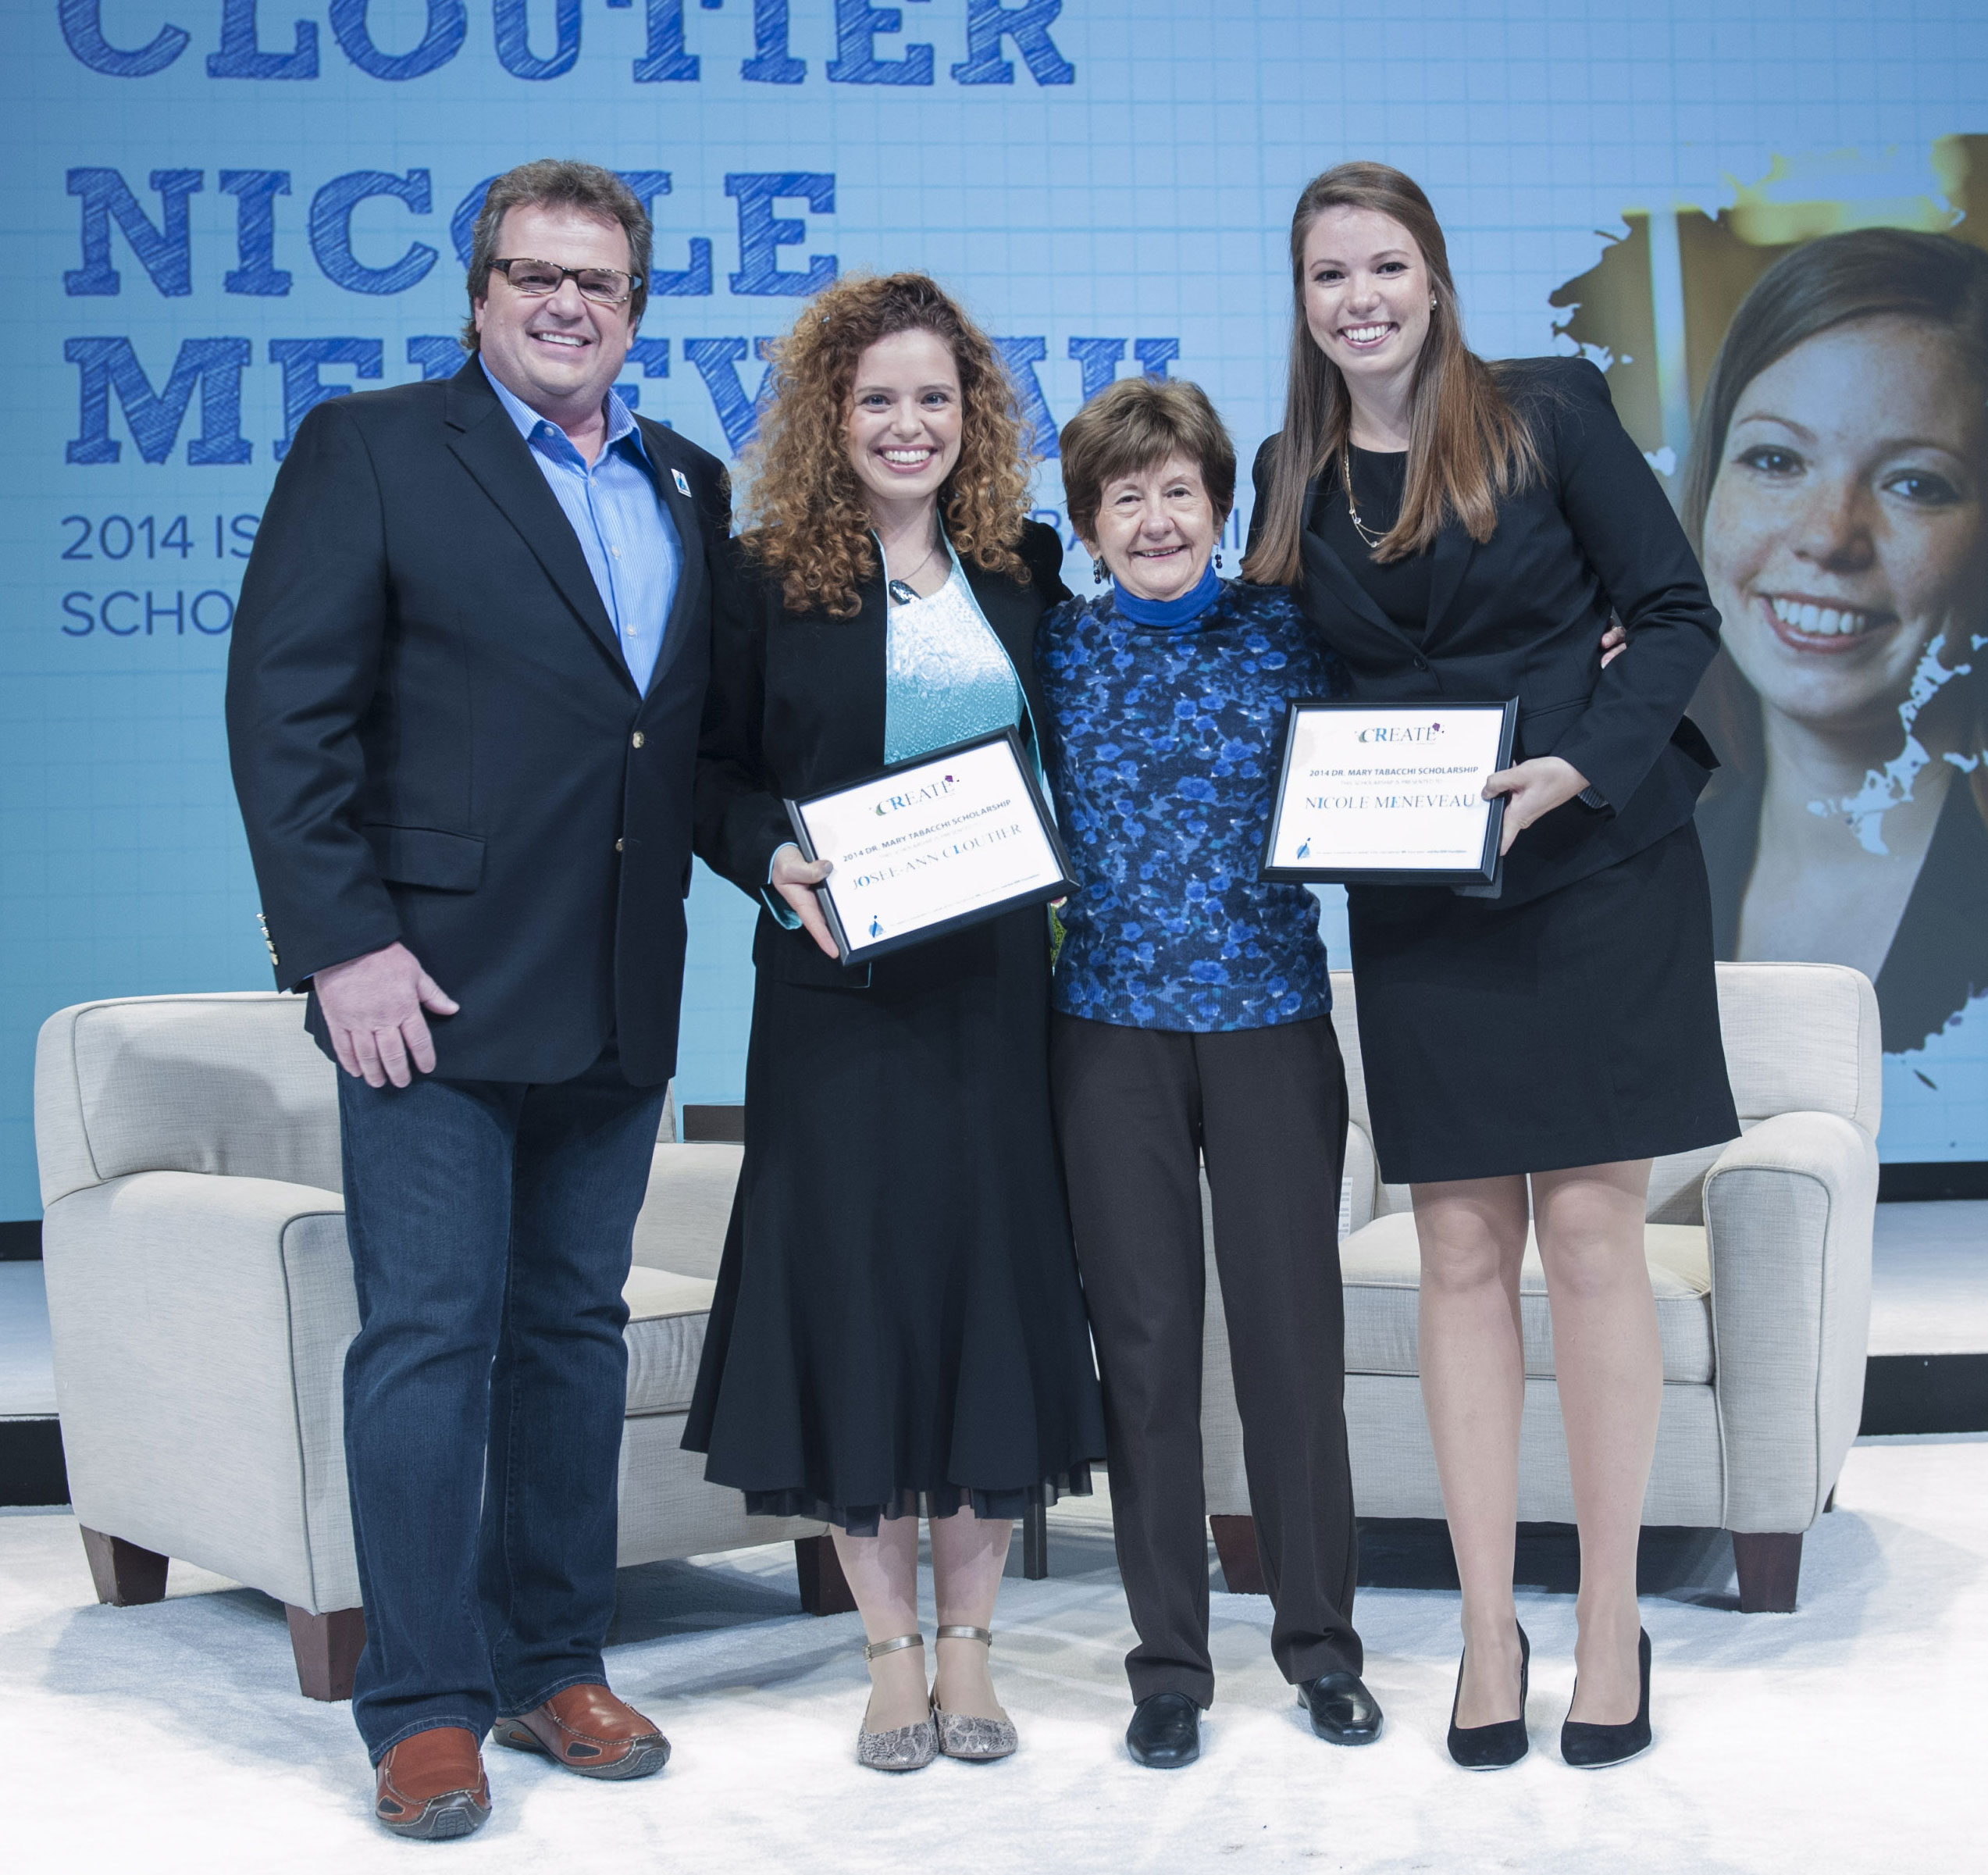 Jeff Kohl, ISPA Foundation Chairman; Josee-Ann Cloutier, co-recipient of the 2014 Mary Tabacchi Scholarship; Mary Tabacchi; and Nicole Meneveau, co-recipient of the 2014 Mary Tabacchi Scholarship